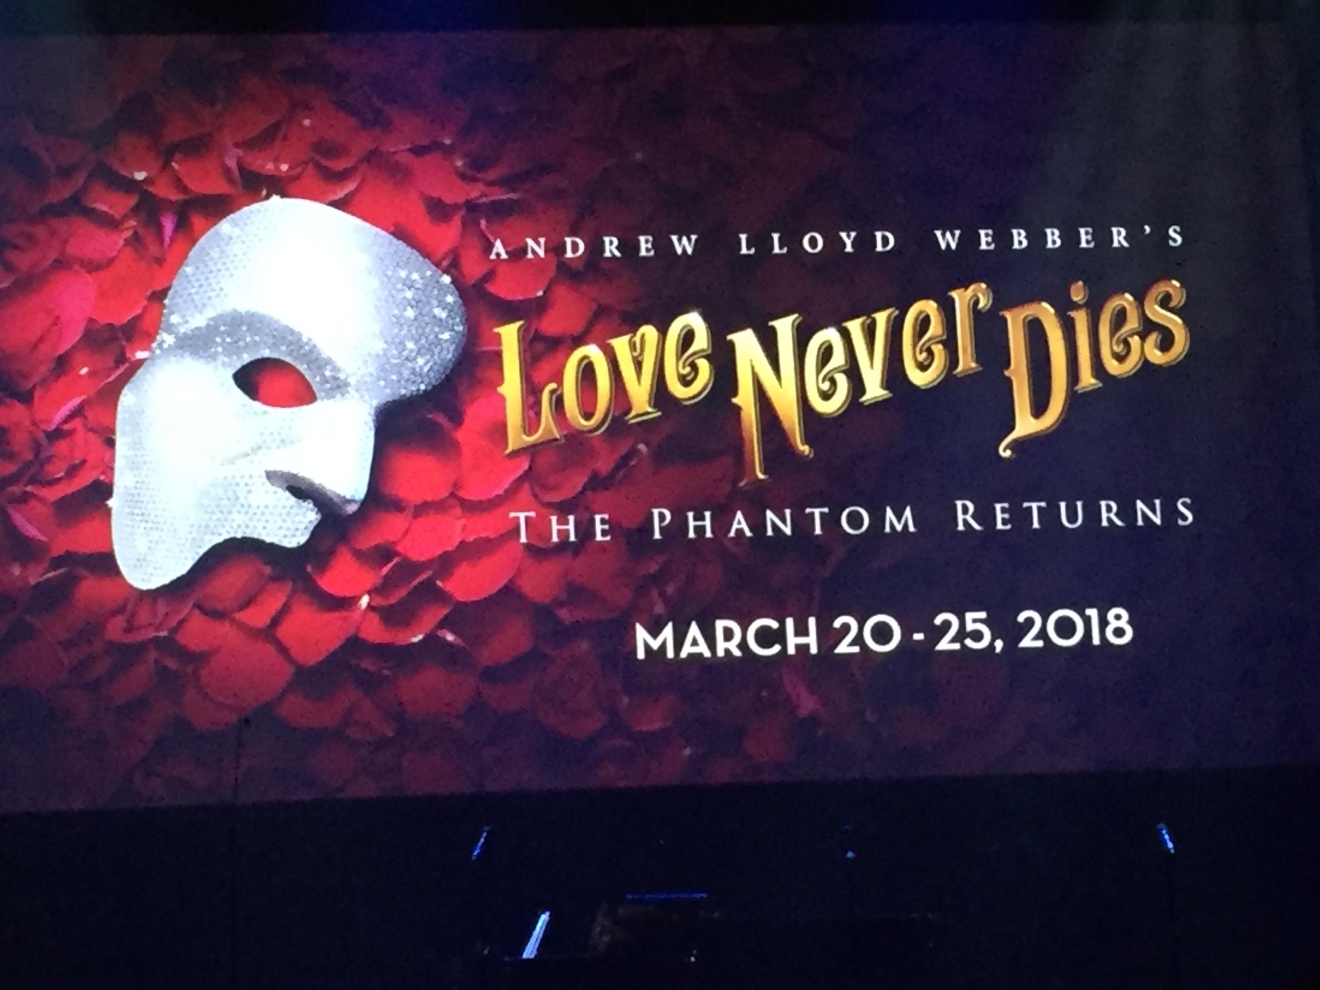 Andrew Lloyd Webber's Love Never Dies, the sequel to Phantom of the Opera, was revealed as an upcoming tour during the Smith Center for the Performing Arts 2017-2018 Broadway series preview Tuesday, Feb. 28, 2017, in Reynolds Hall. It will run in Las Vegas from March 20-25, 2018 (Jami Seymore | KSNV)